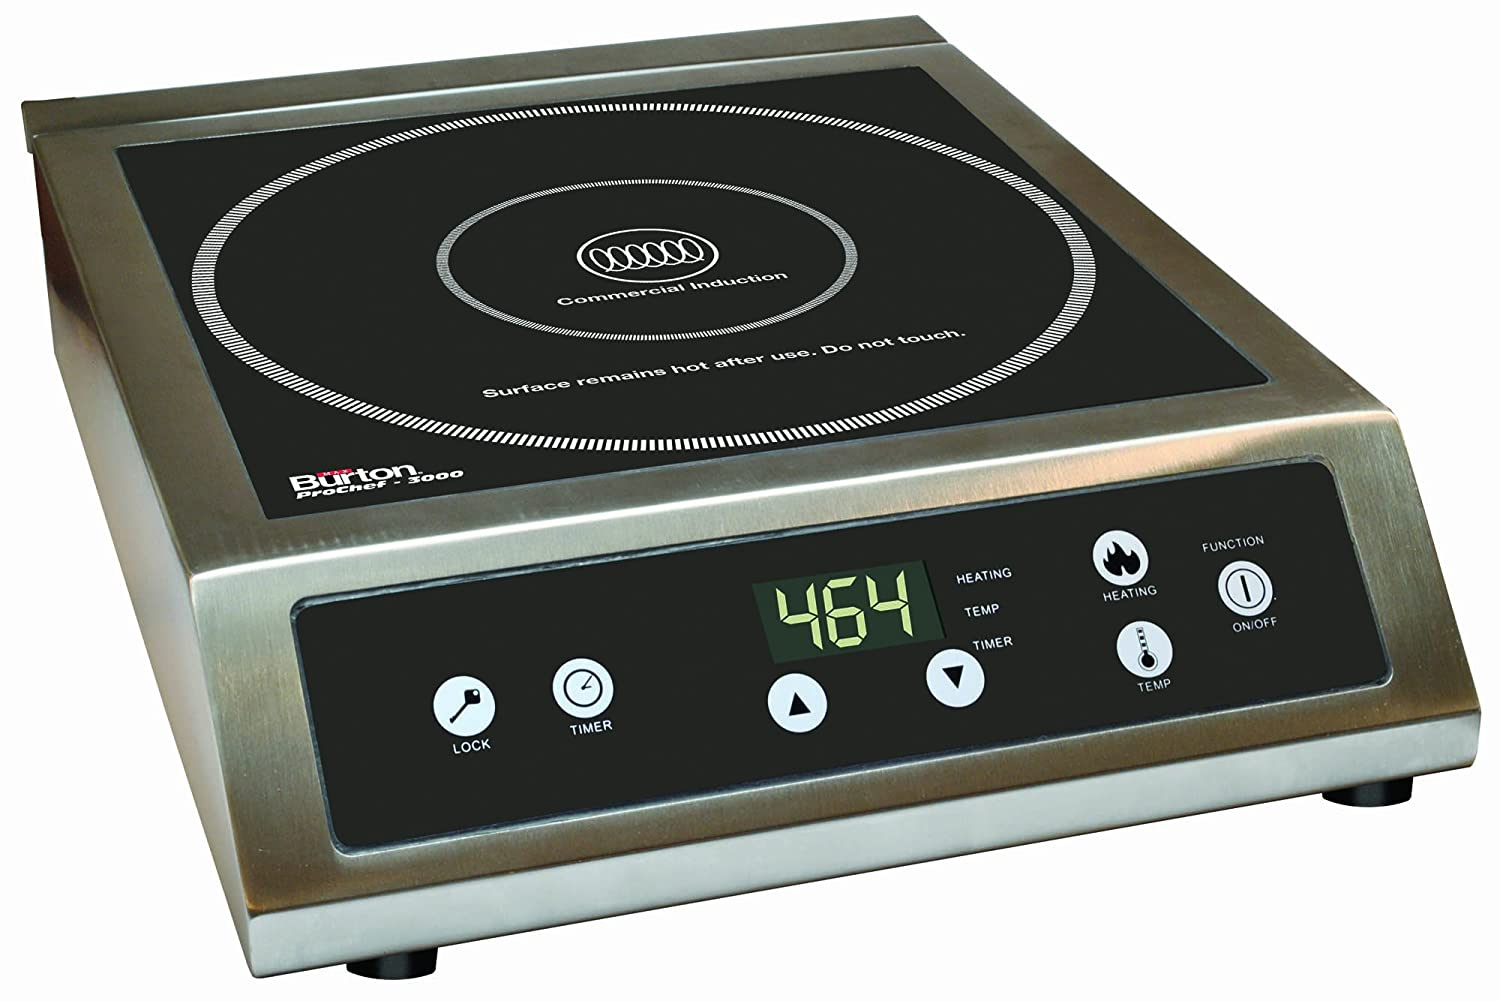 Exceptional Amazon.com: Max Burton 6530 ProChef 3000 Watt Commercial Induction Cooktop,  Black: Kitchen U0026 Dining